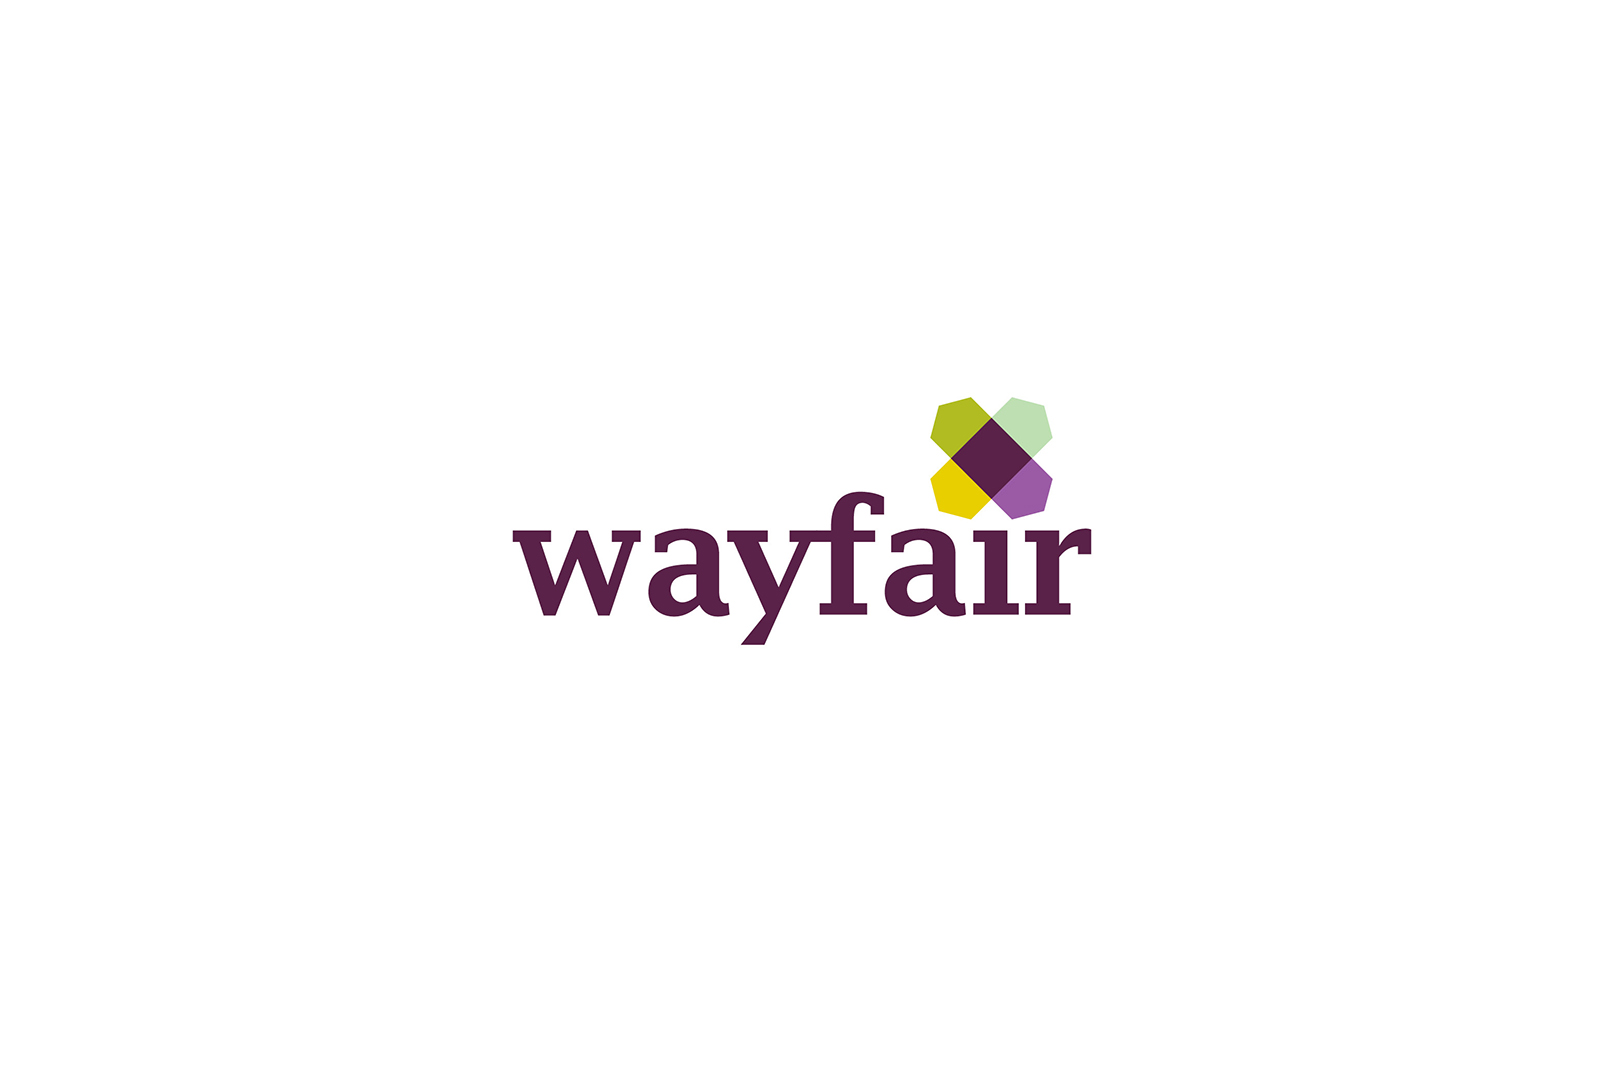 Wayfair in purple text with purple, yellow, and green logo on top